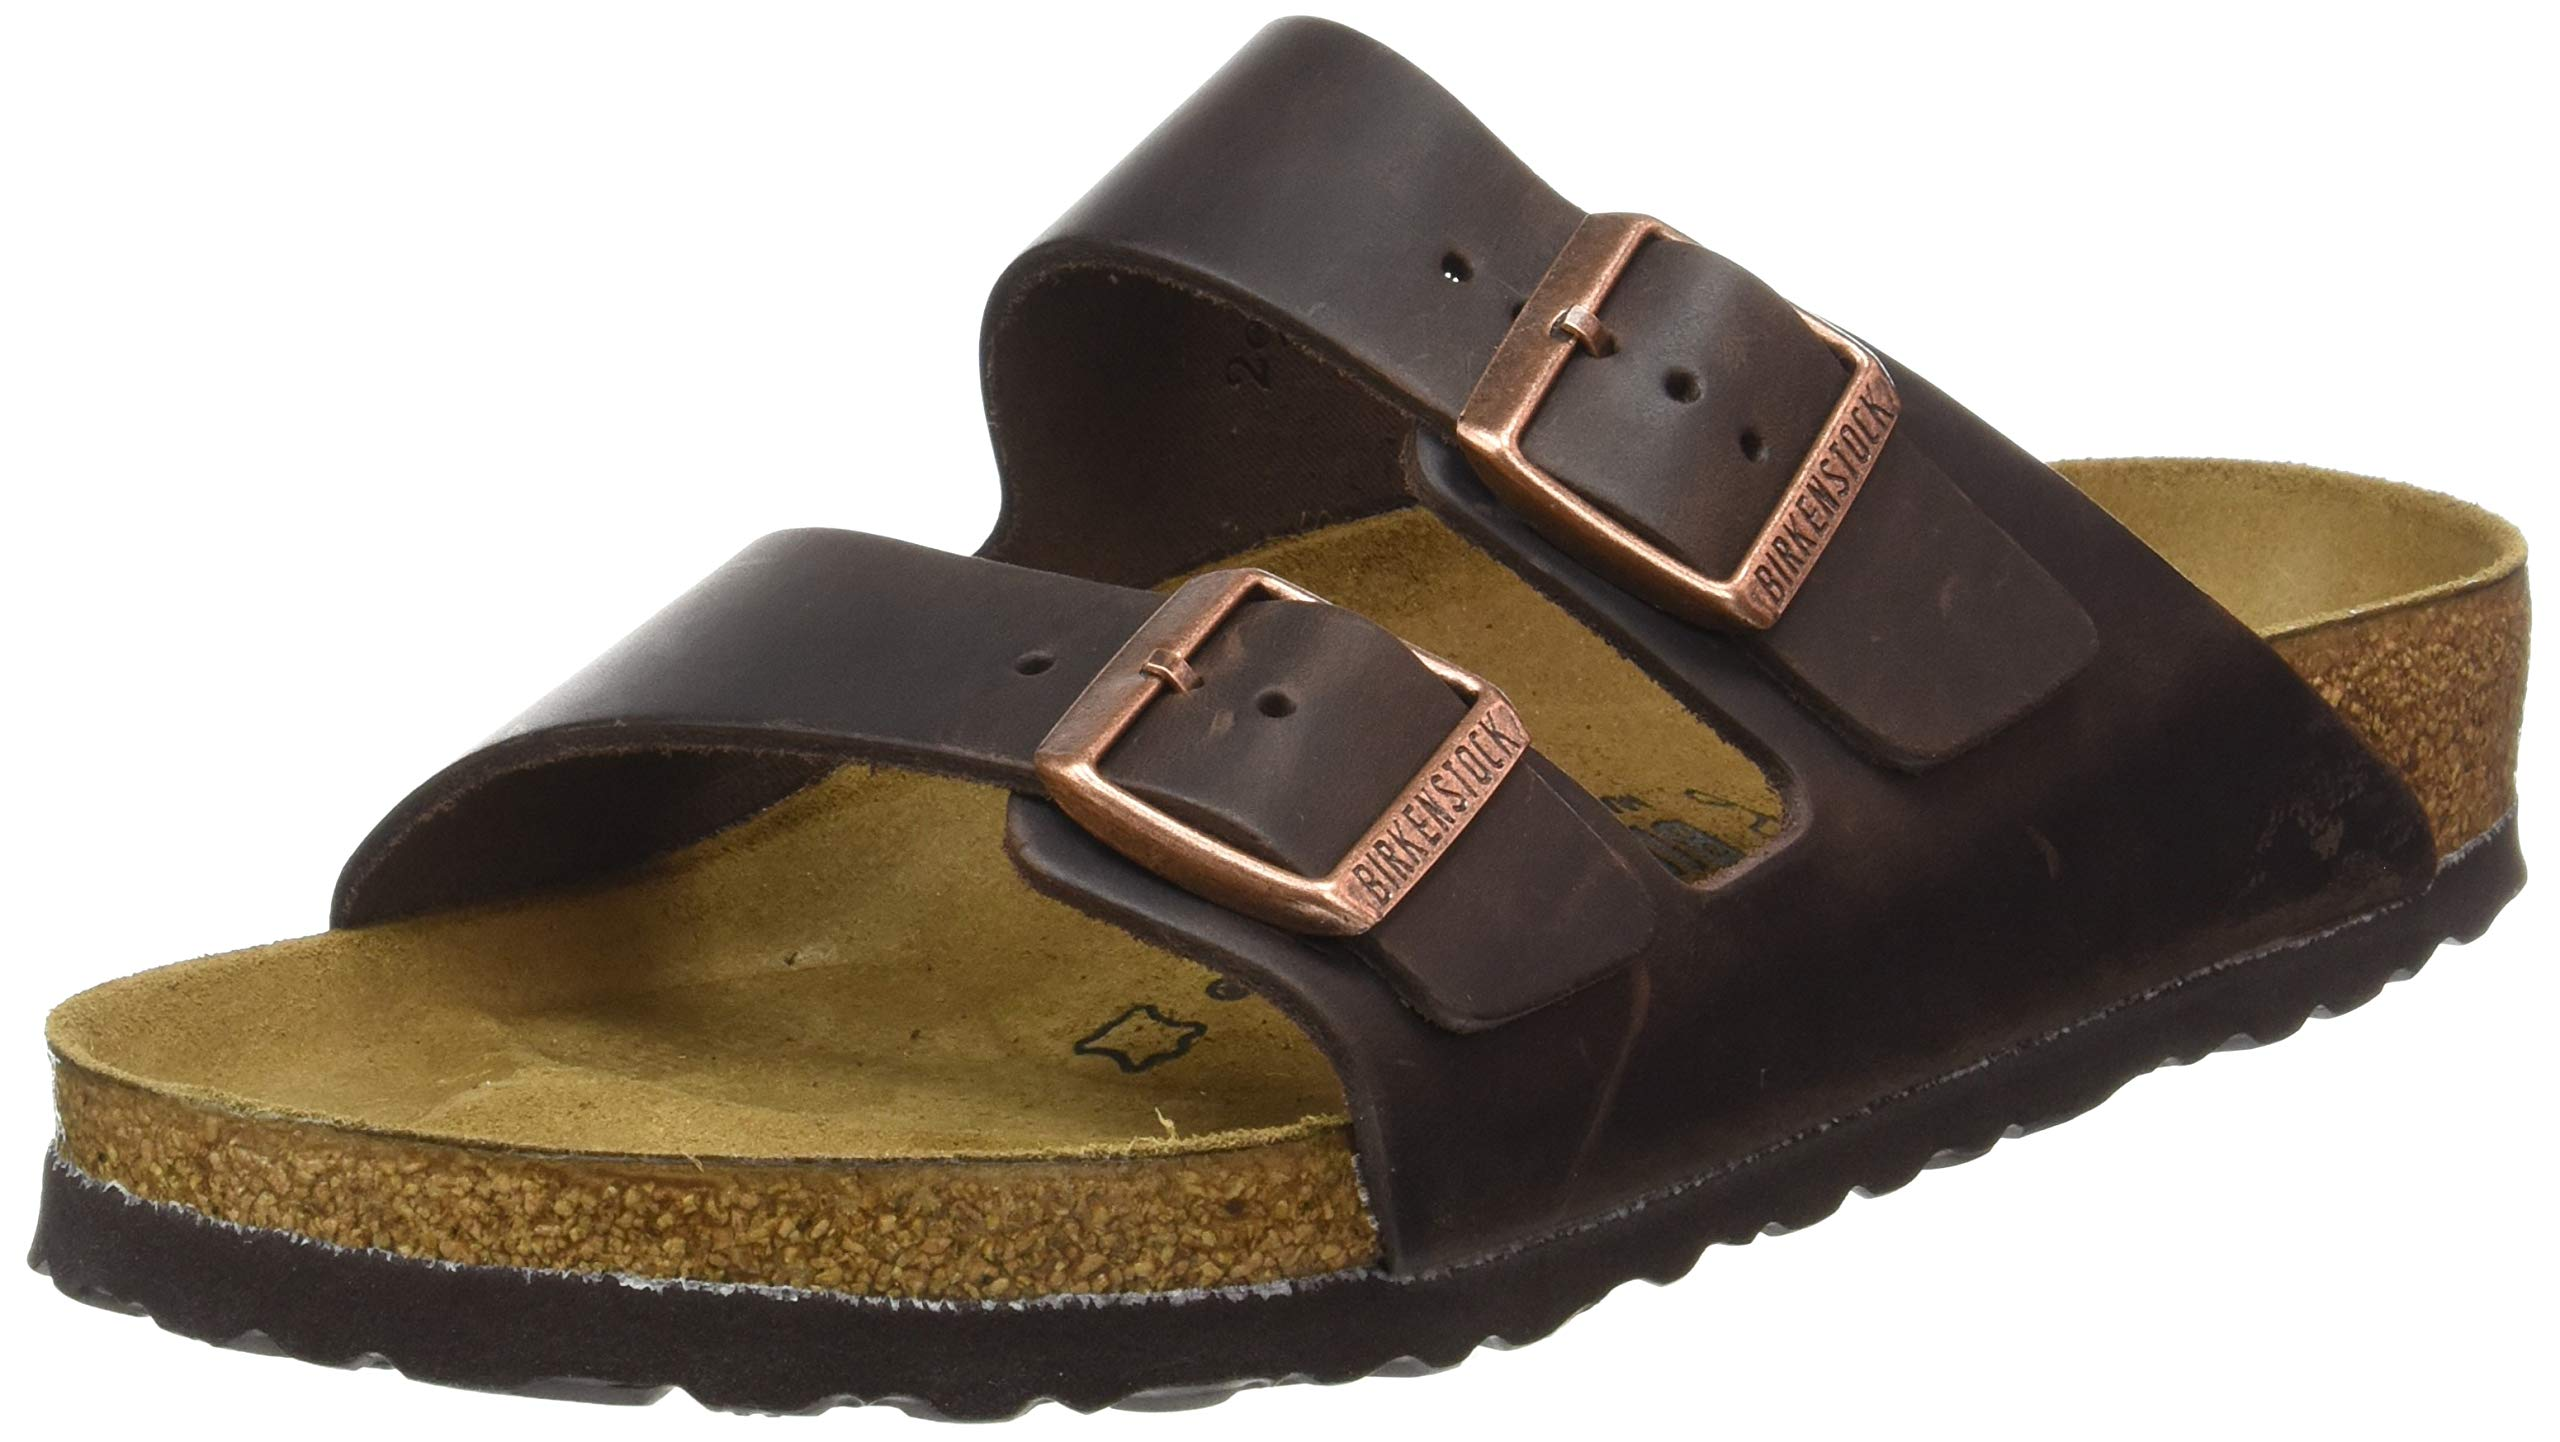 Birkenstock Womens Arizona Leather Open Toe Casual Slide, Habana, Size 8.0 by Birkenstock